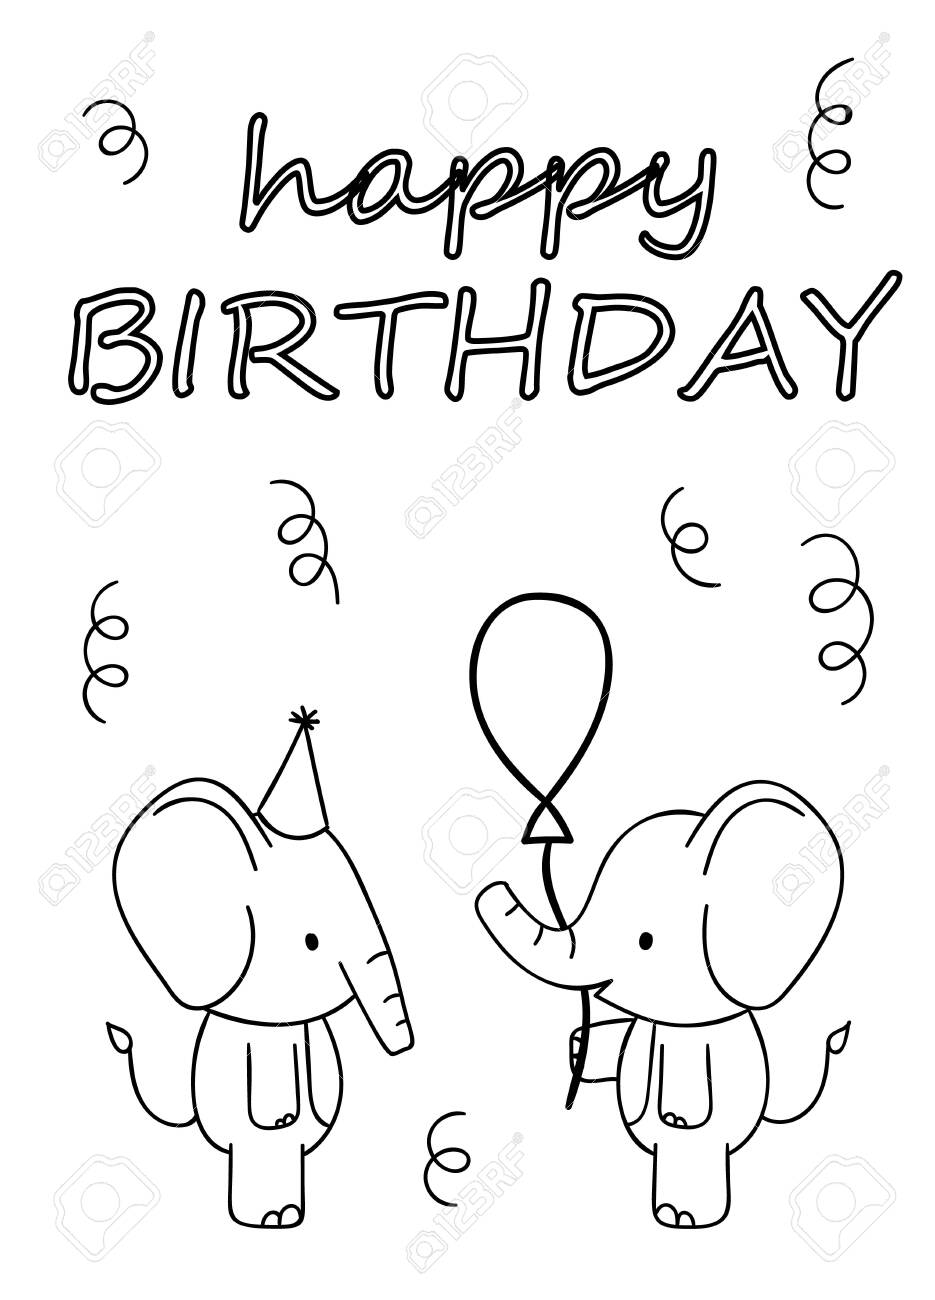 Coloring pages, black and white cute hand drawn elephant with..